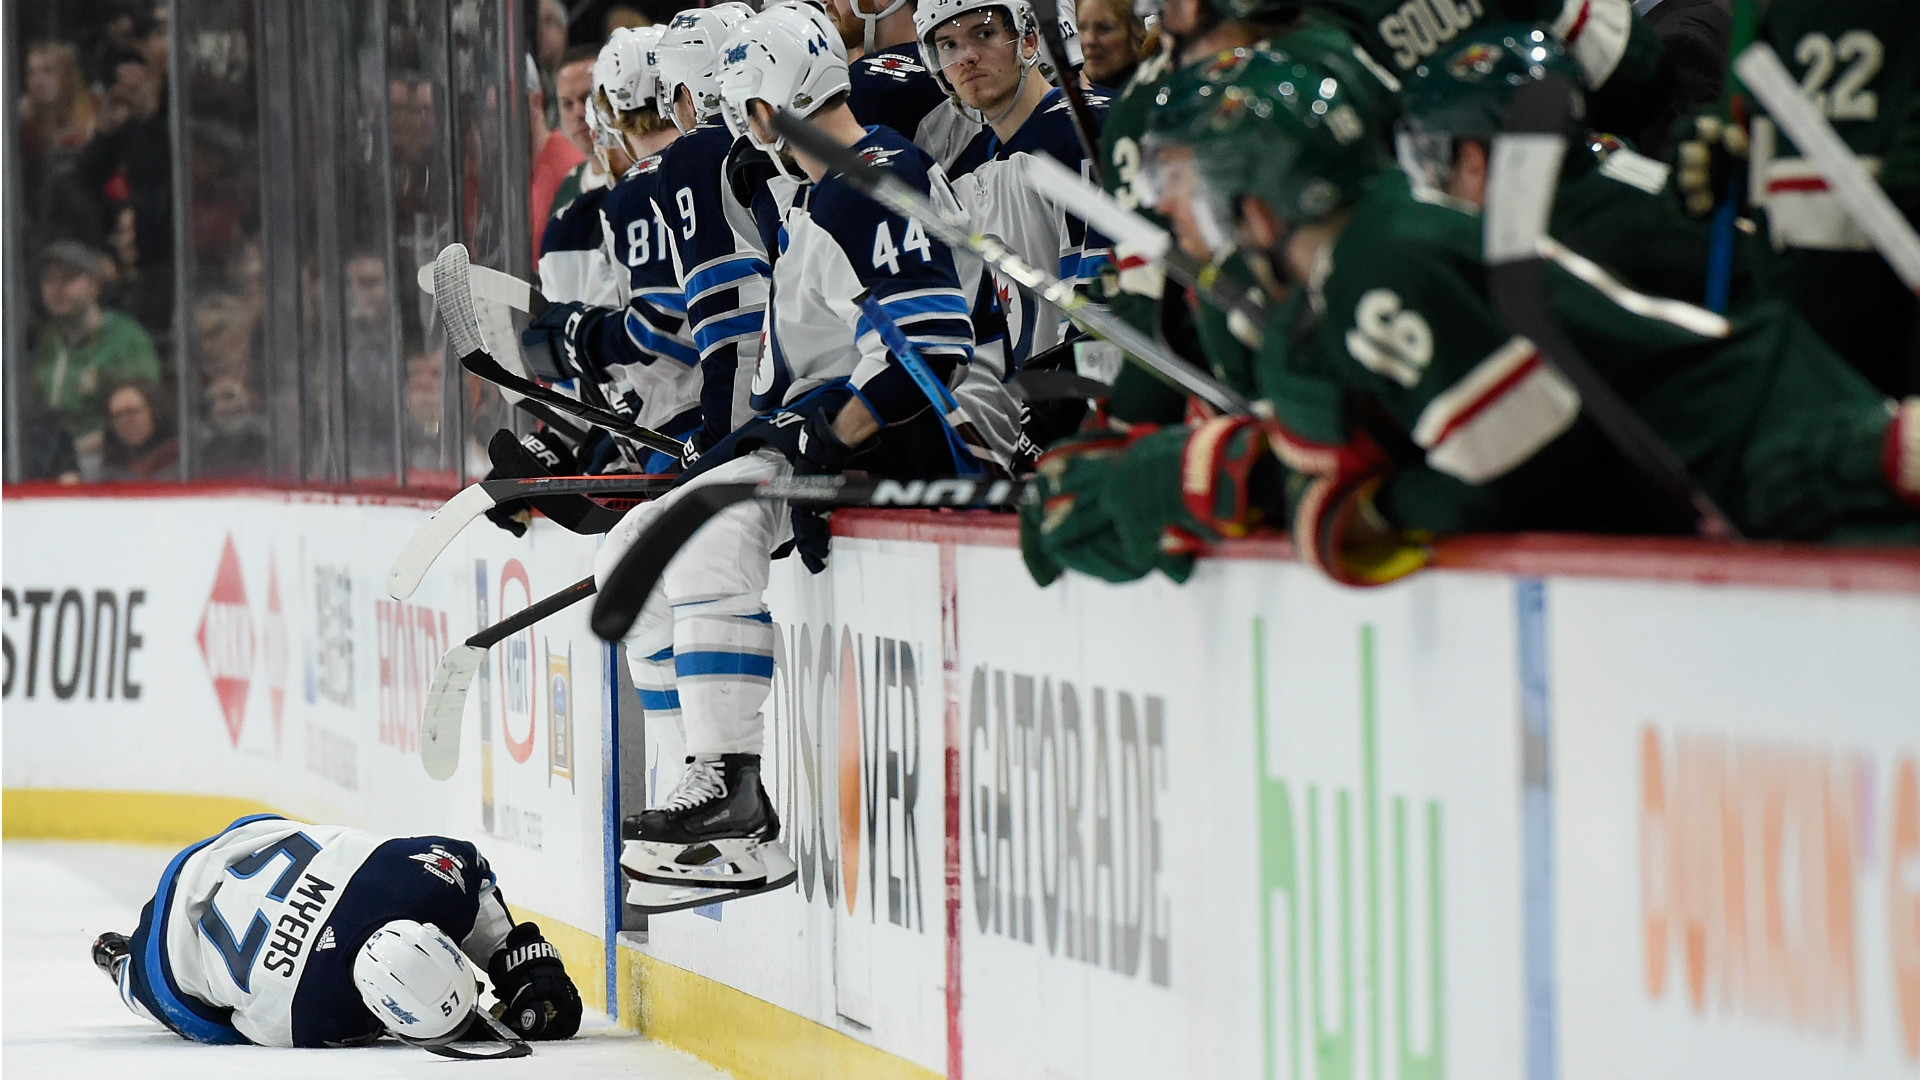 Down 2-0, Wild faces 'huge' game against Winnipeg